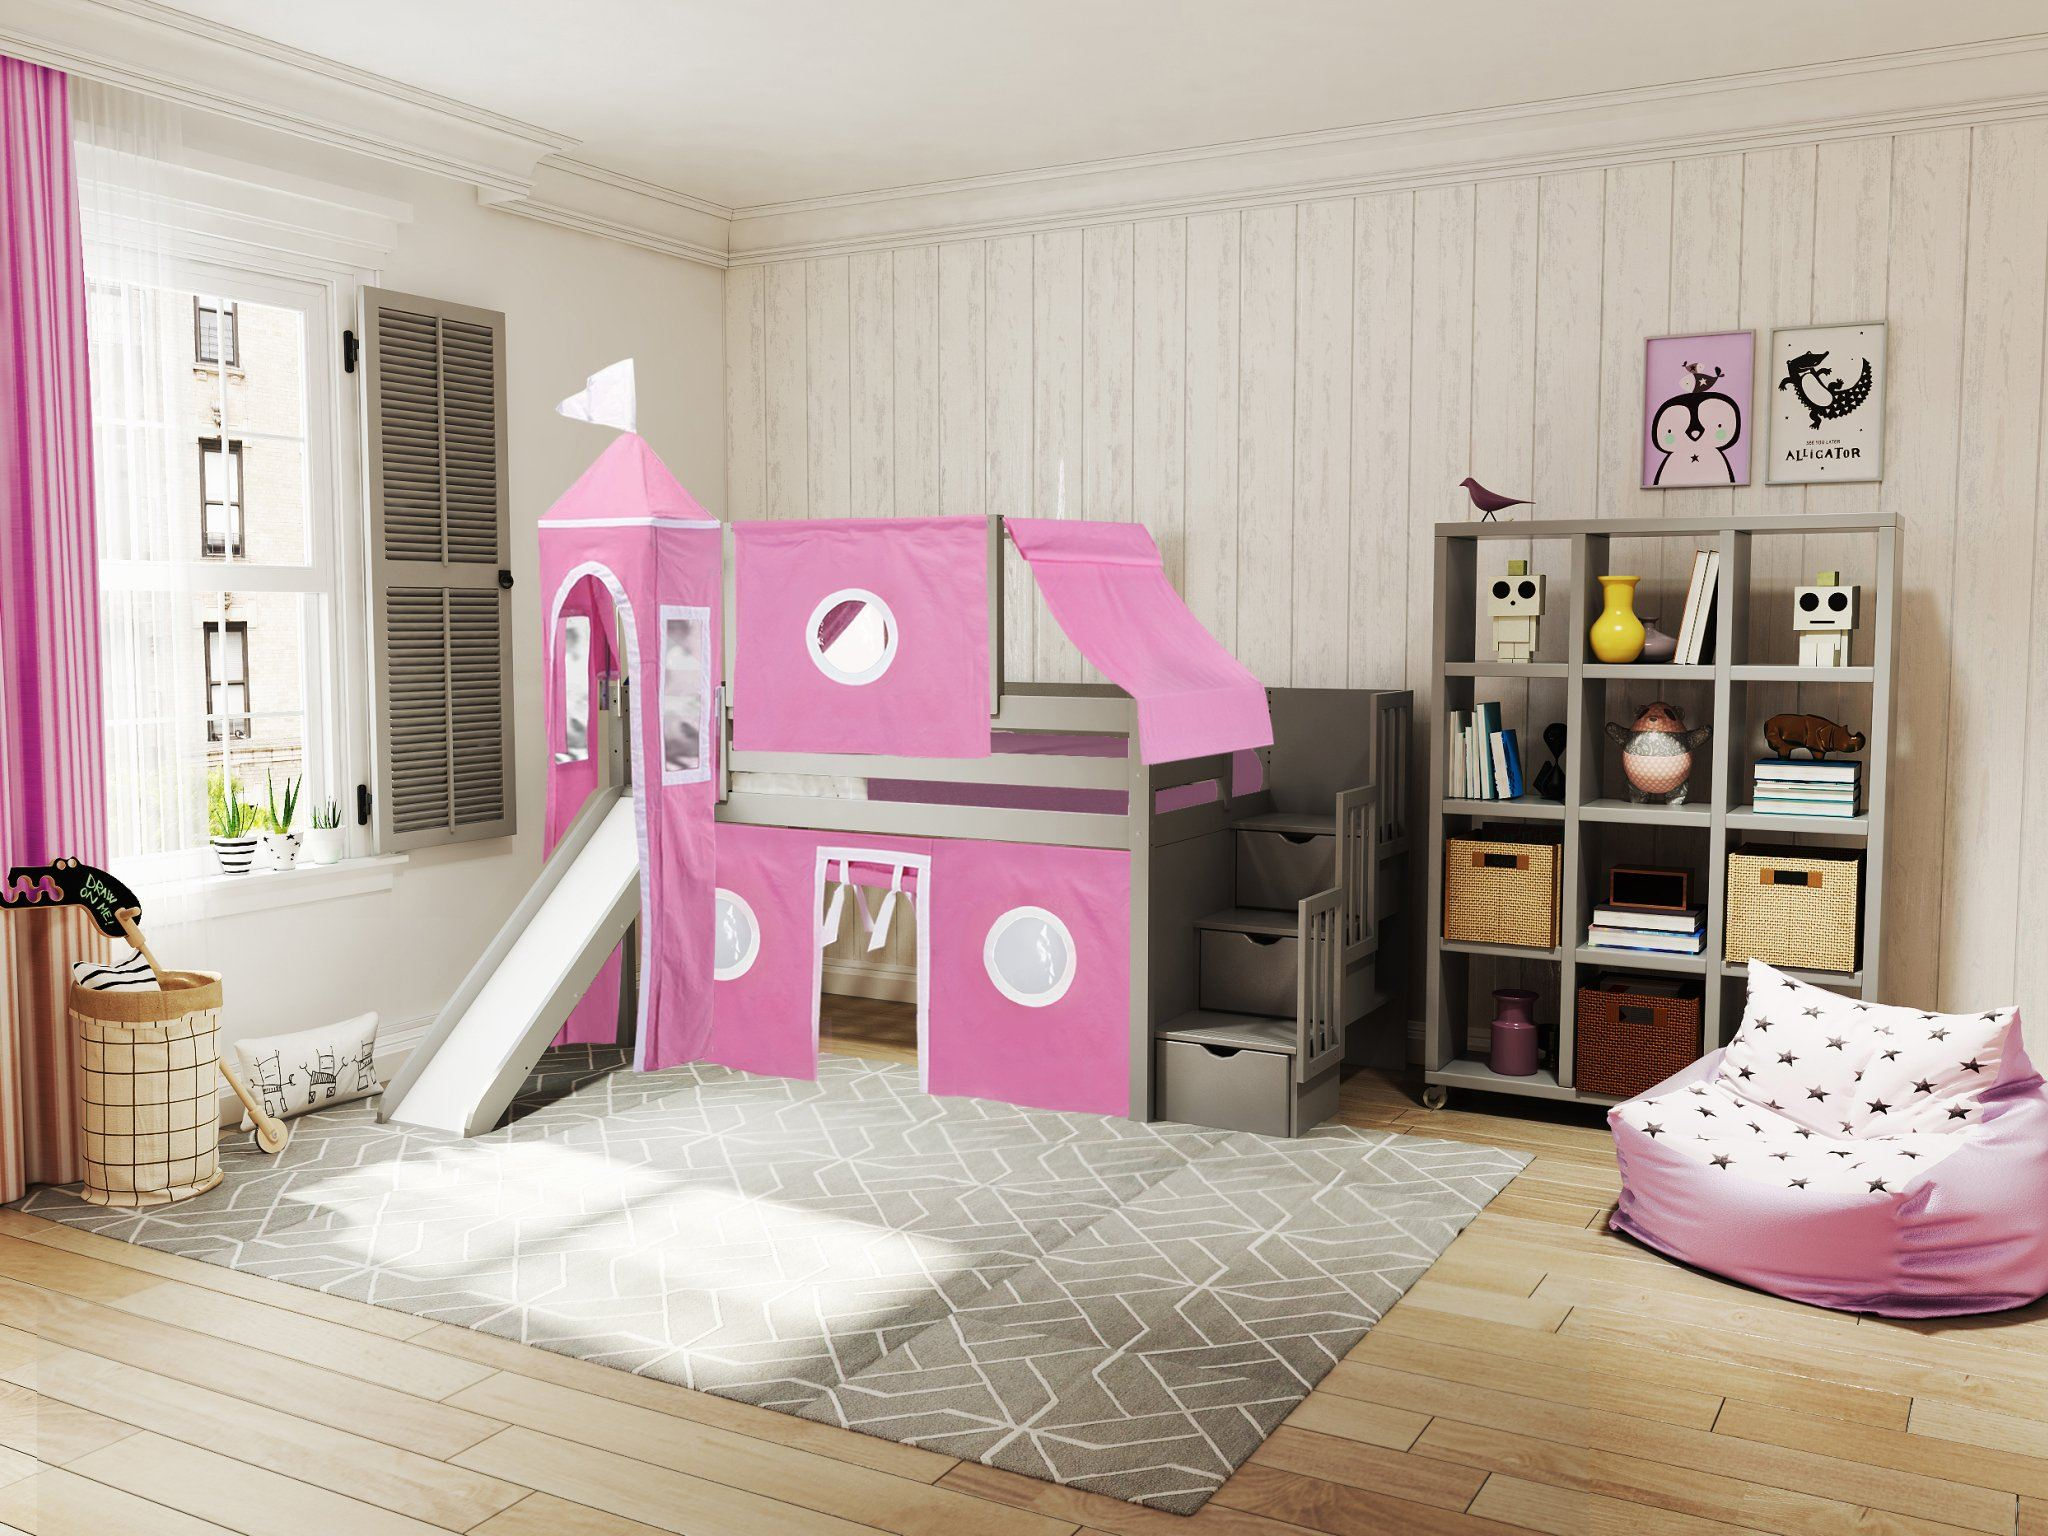 Princess Low Loft Stairway Bed With Slide Pink White Tent And Tower Loft Bed Twin Gray Walmart Com Walmart Com